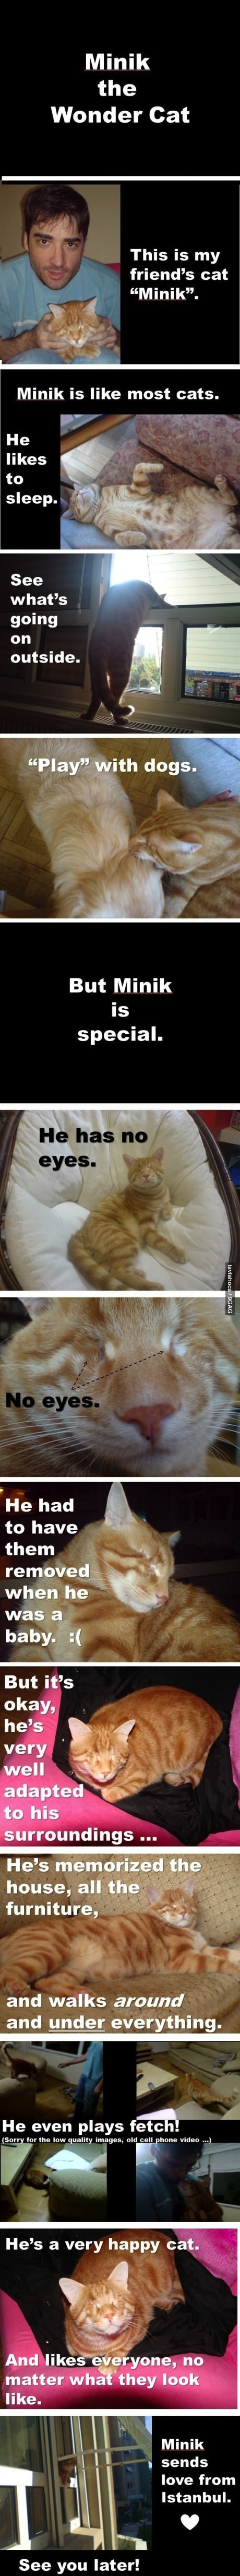 no eyed cat